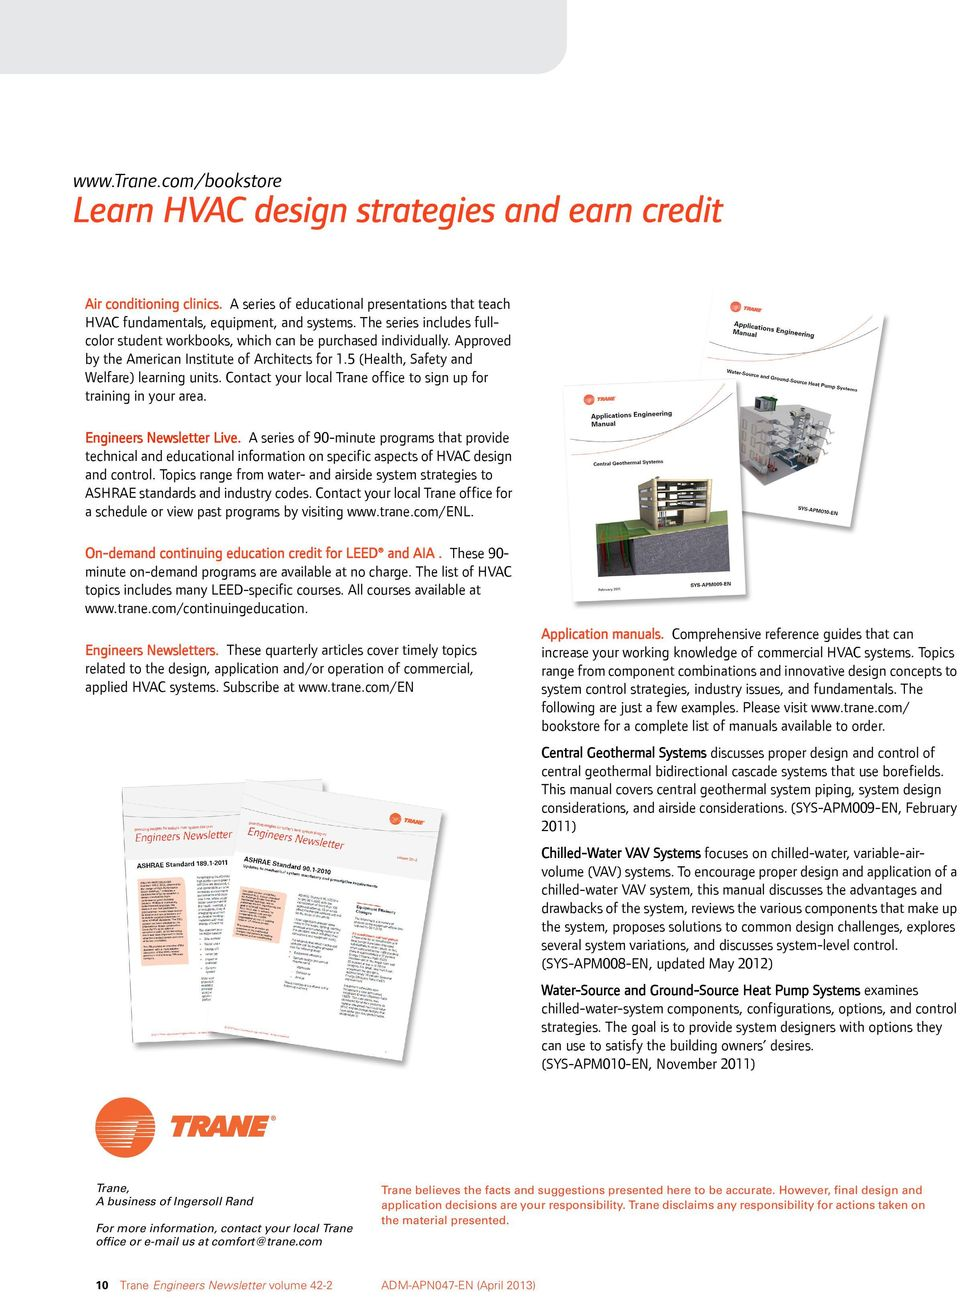 Contact your local Trane office to sign up for training in your area. Engineers Newsletter Live.